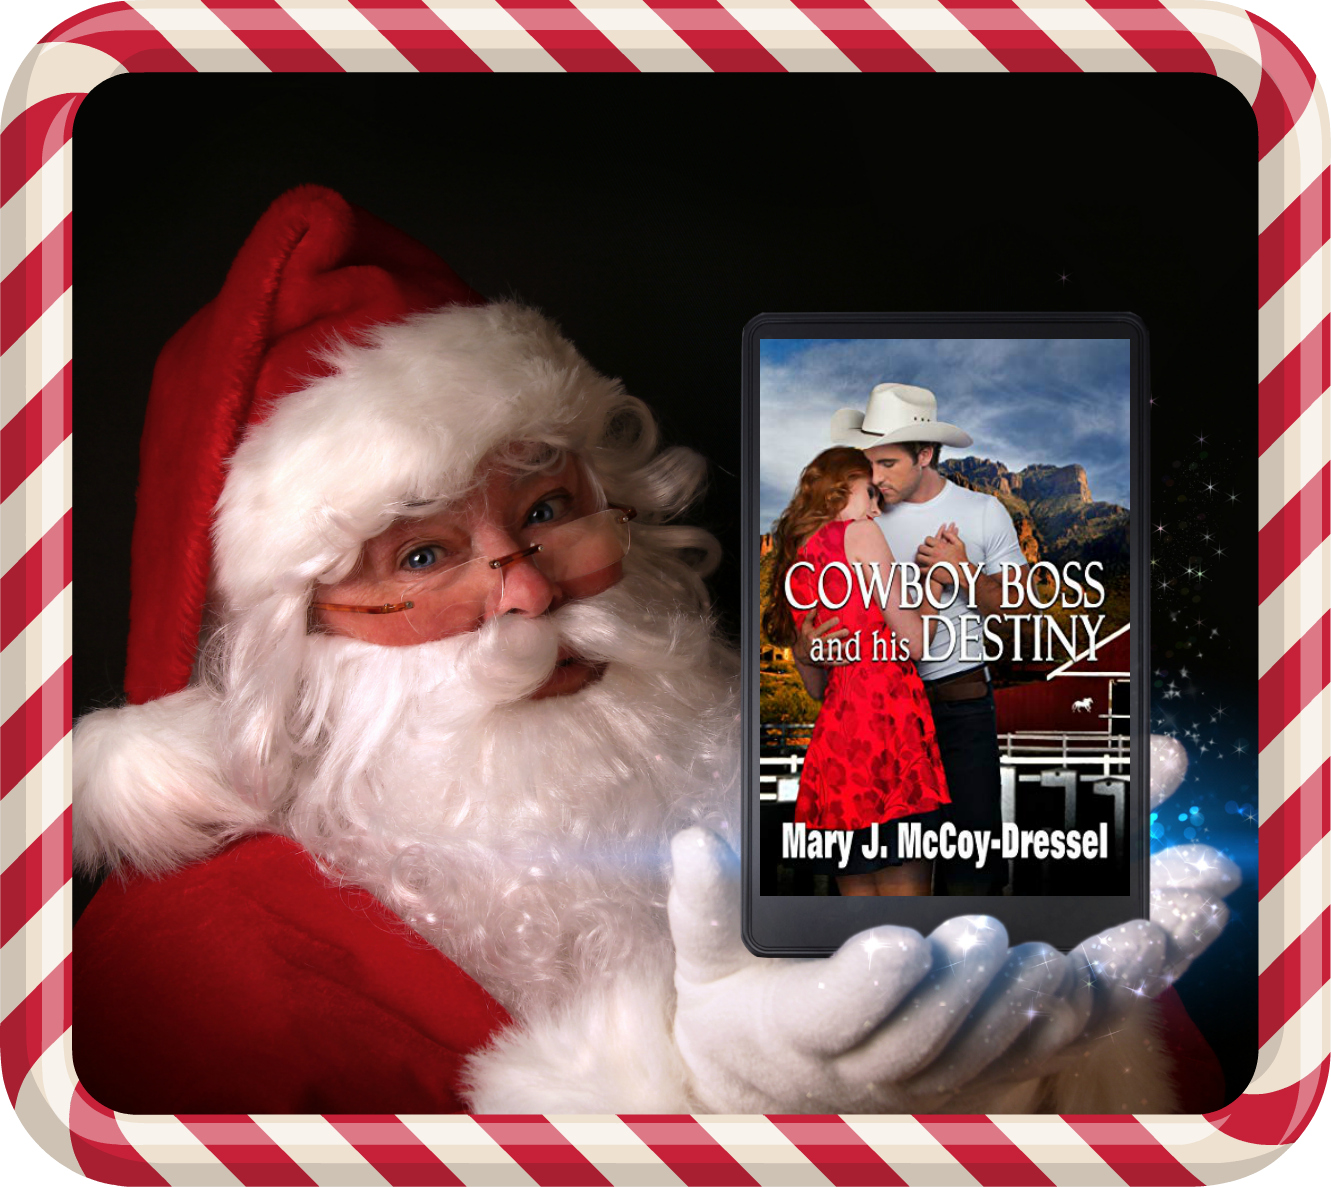 Mary J McCoy-Dressel, Double Dutch Ranch Series: Love at First Sight, Christmas, Holiday, Blog sidebar image